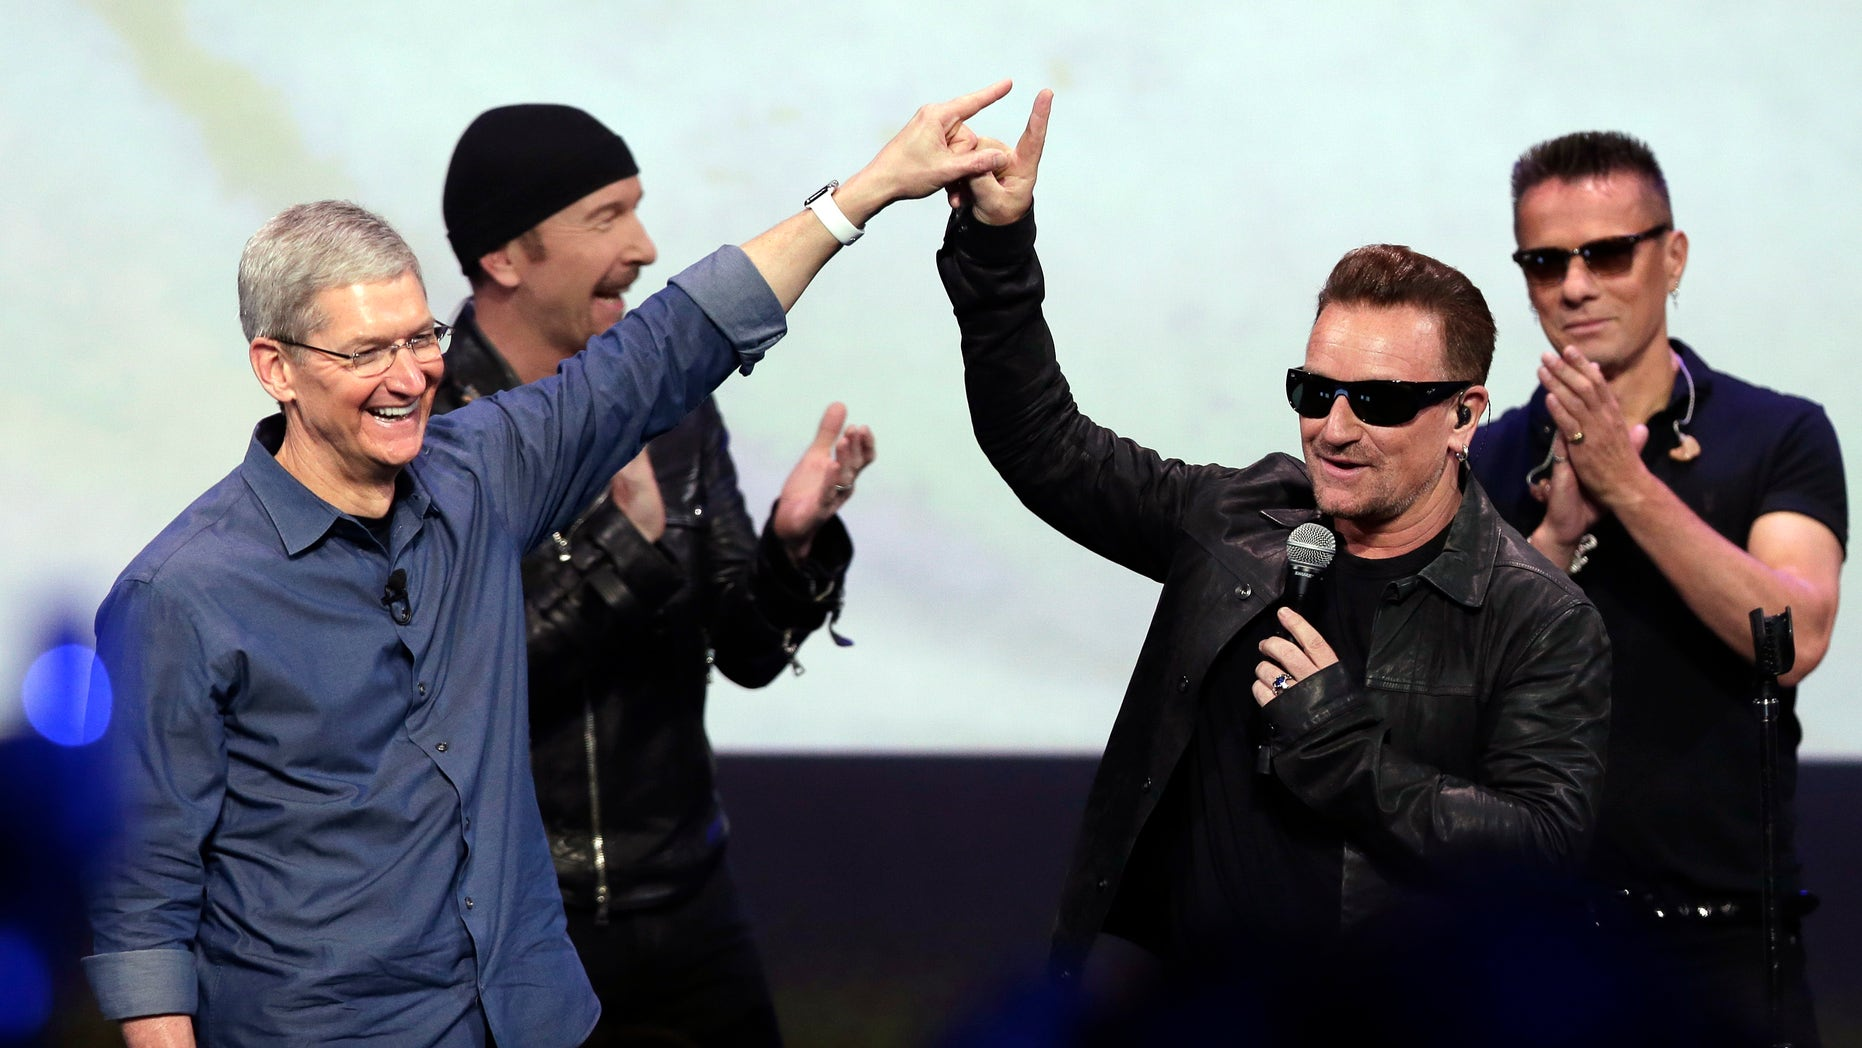 Sept. 9, 2014: Apple CEO Tim Cook, left, greets Bono from the band U2 after they preformed at the end of the Apple event in Cupertino, Calif.